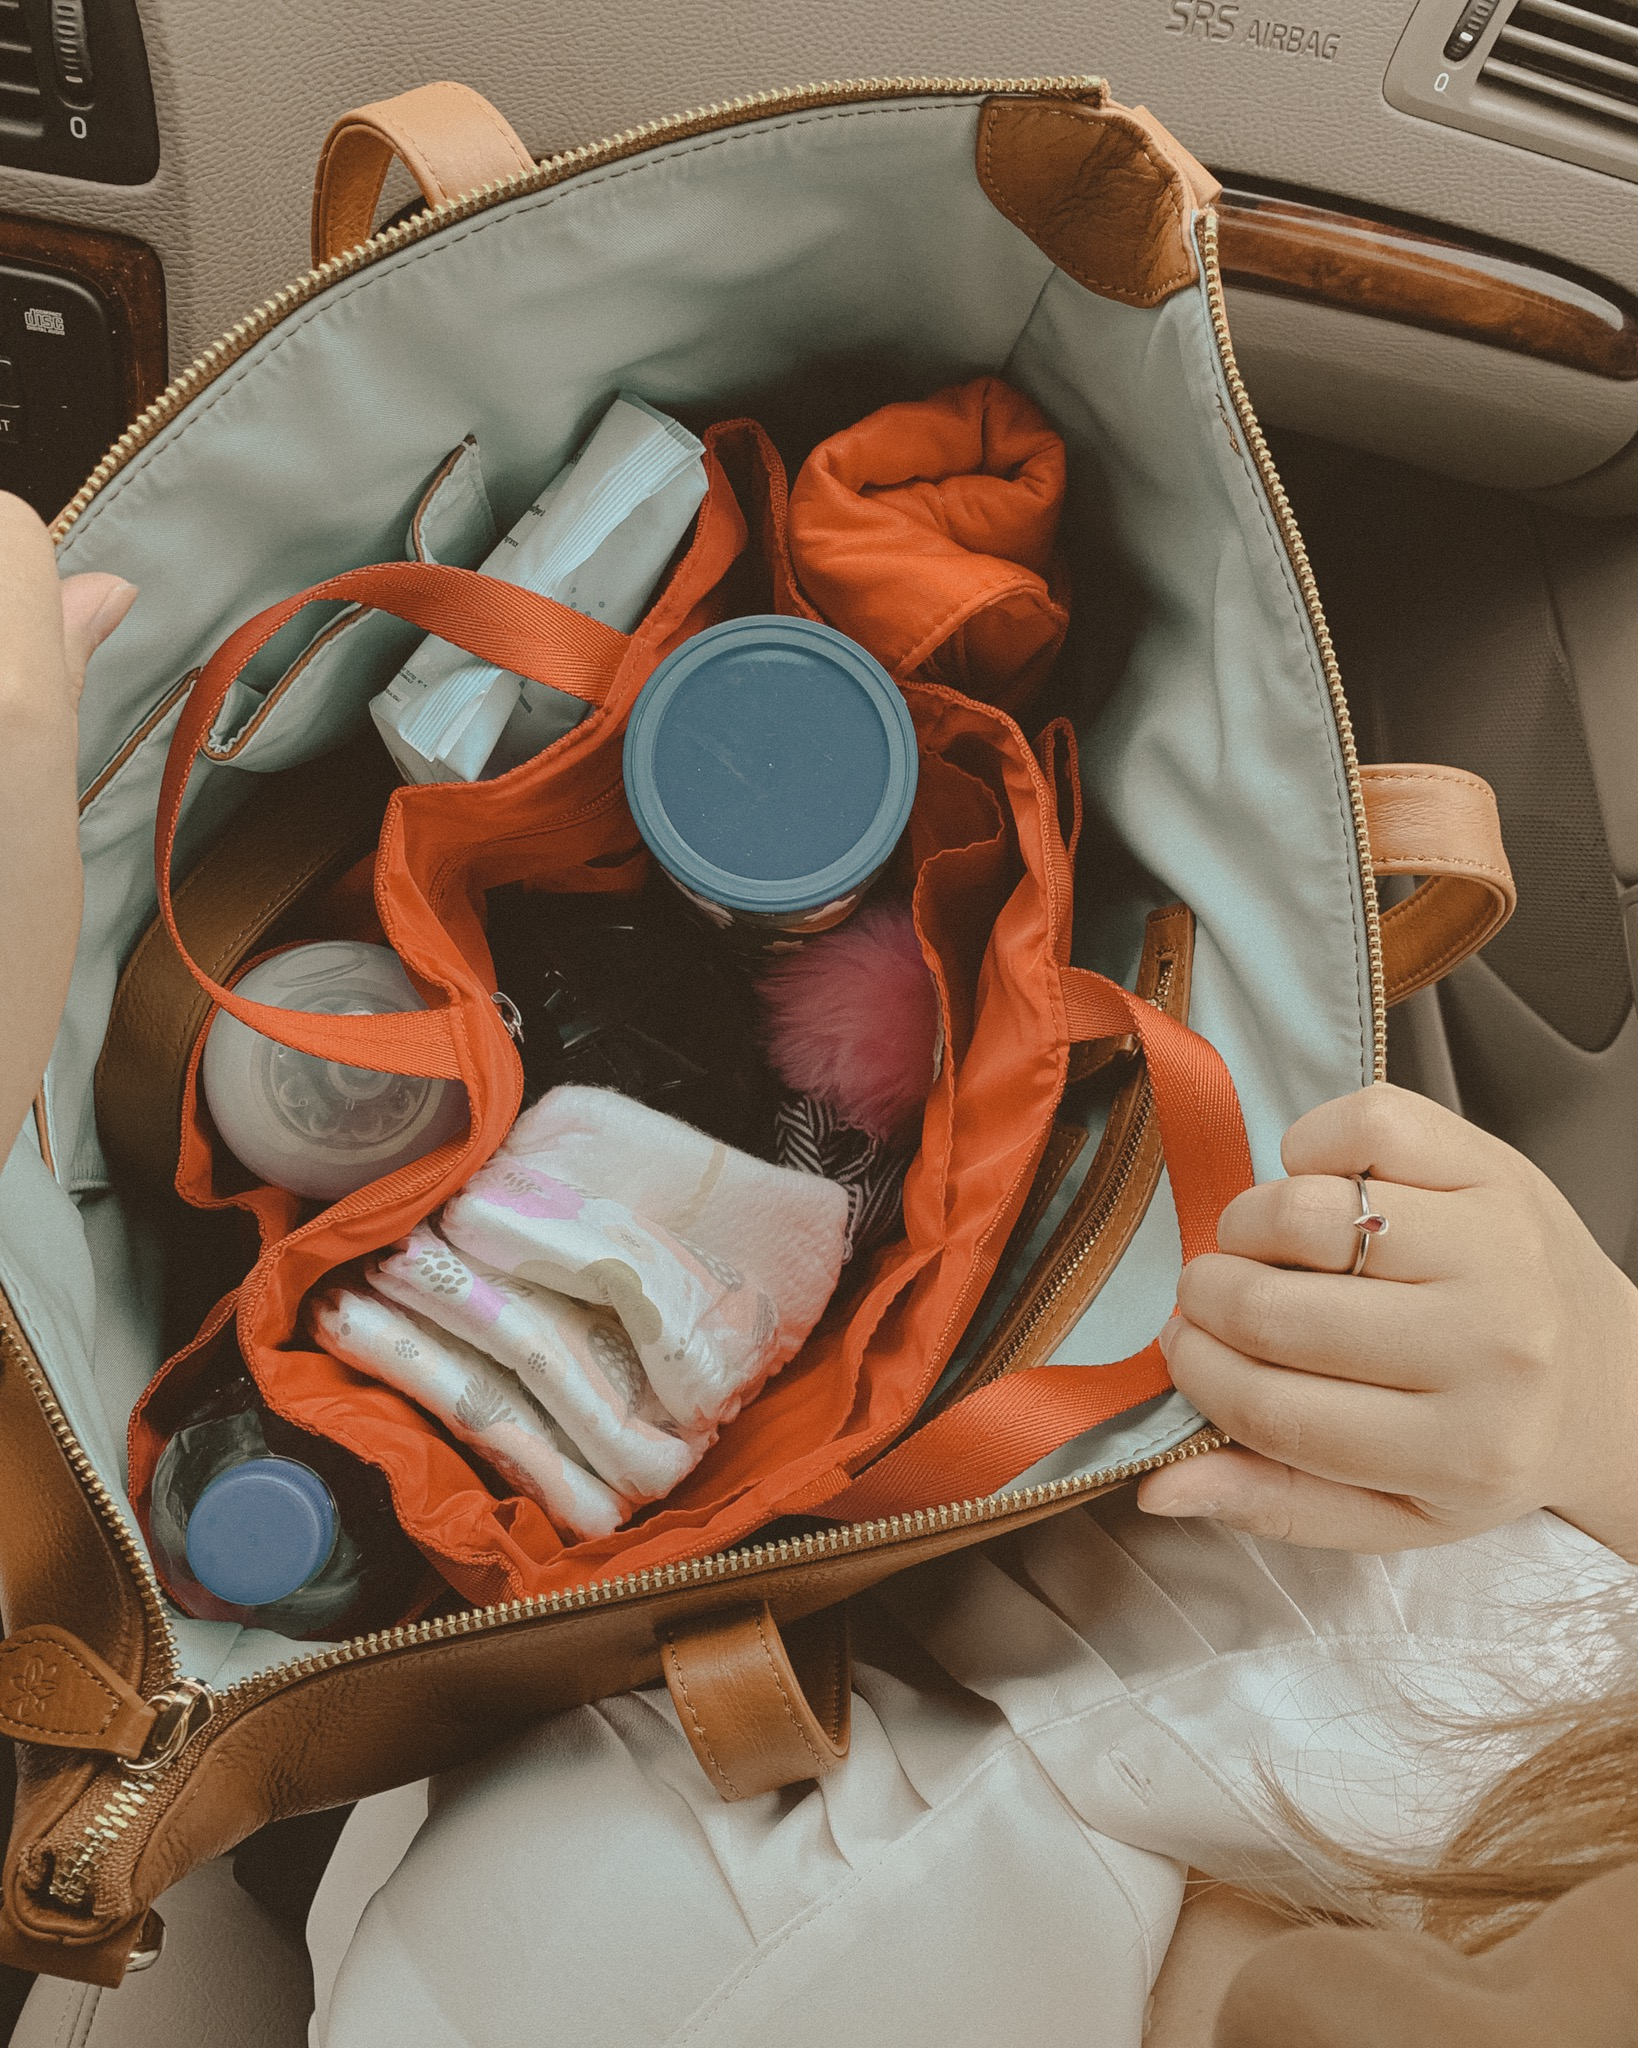 Using the bag organizer from my Madeline Diaper Bag